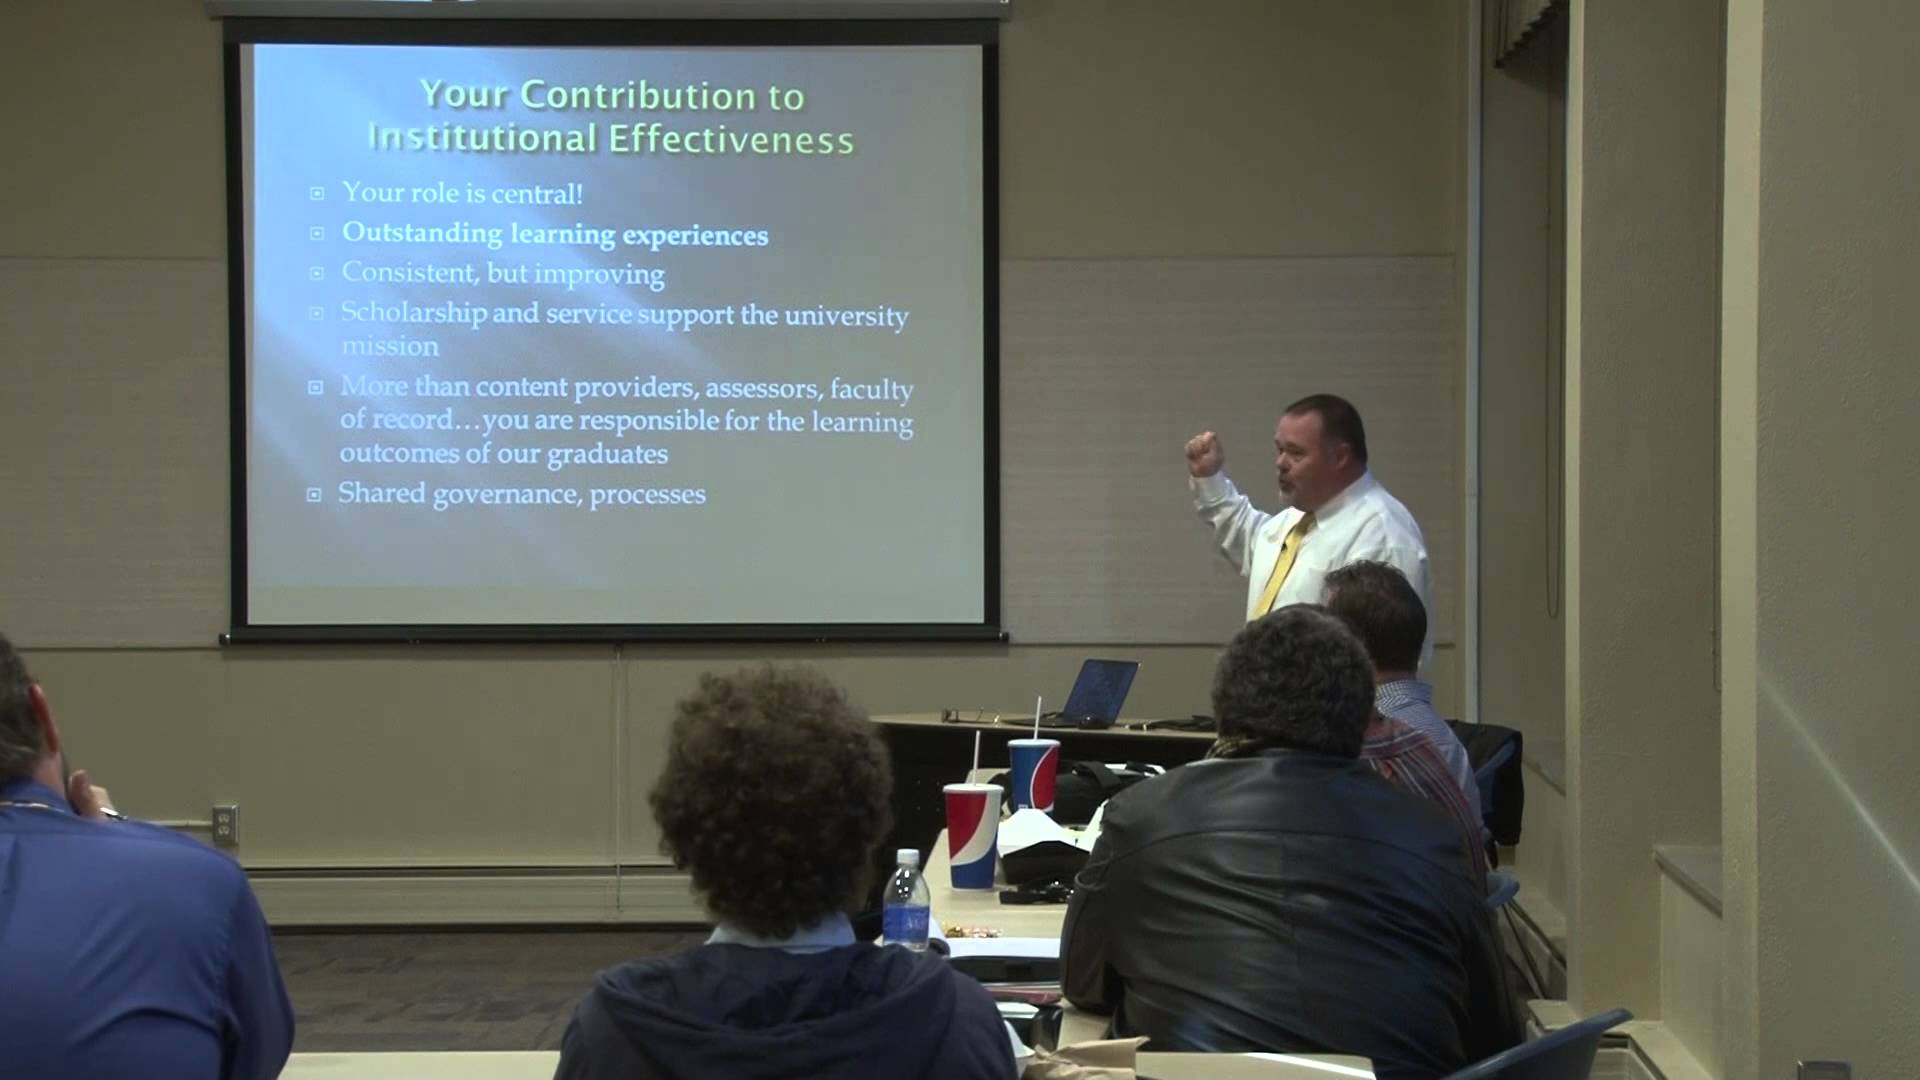 Your contribution lecture